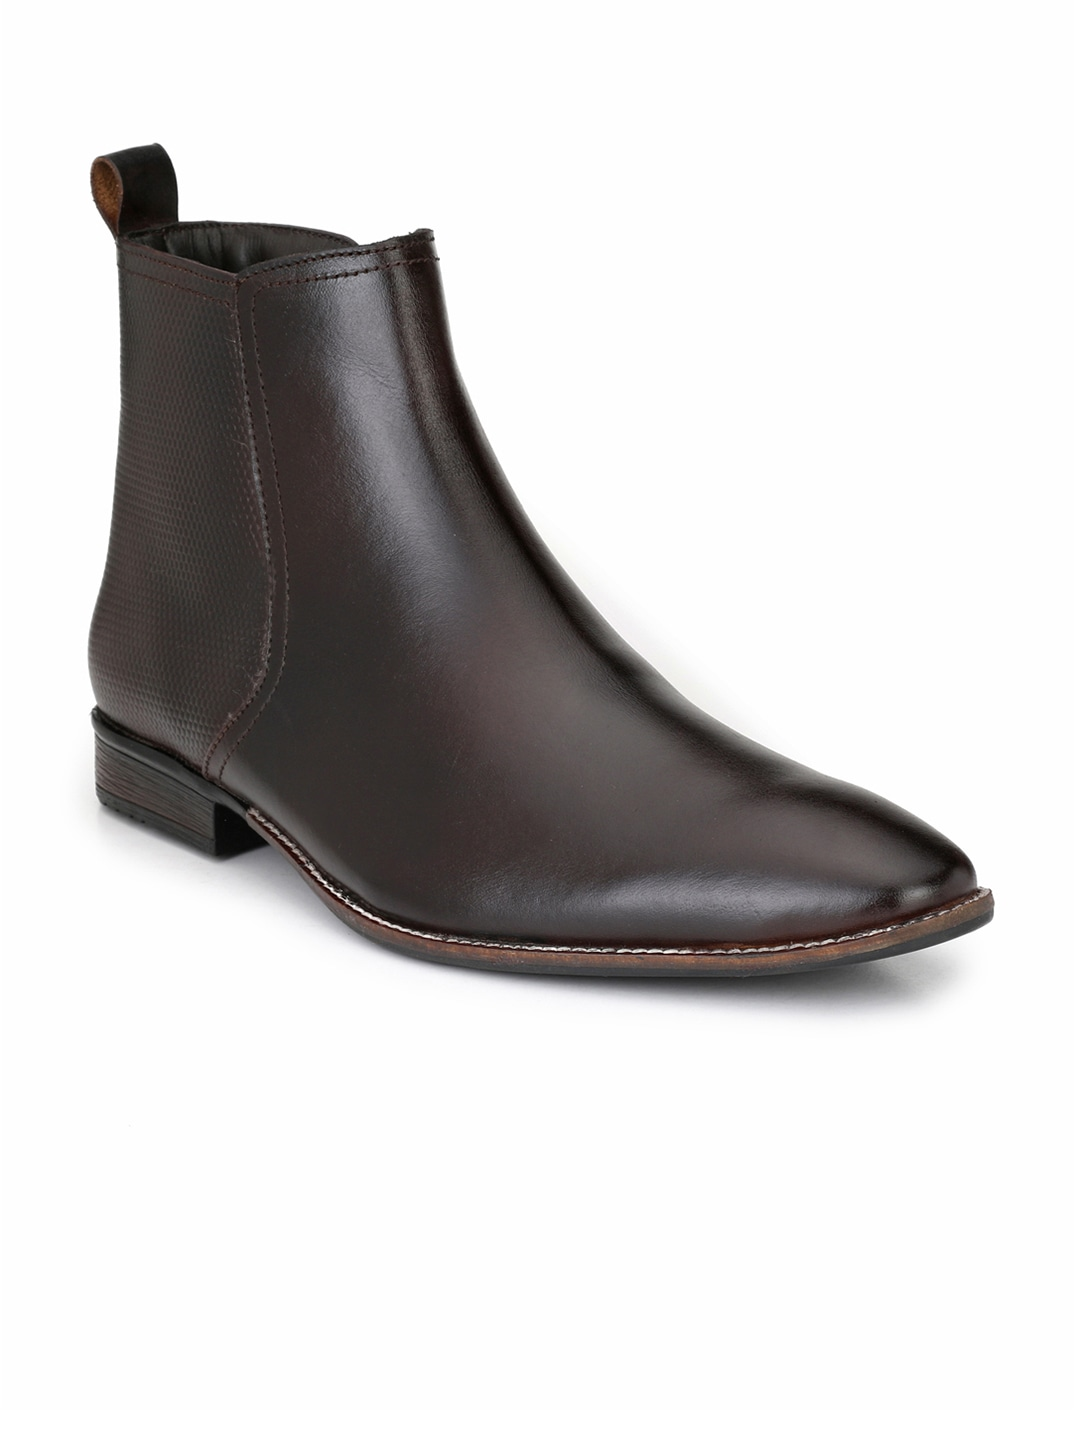 Brown Solid Leather Mid-Top Flat Boots